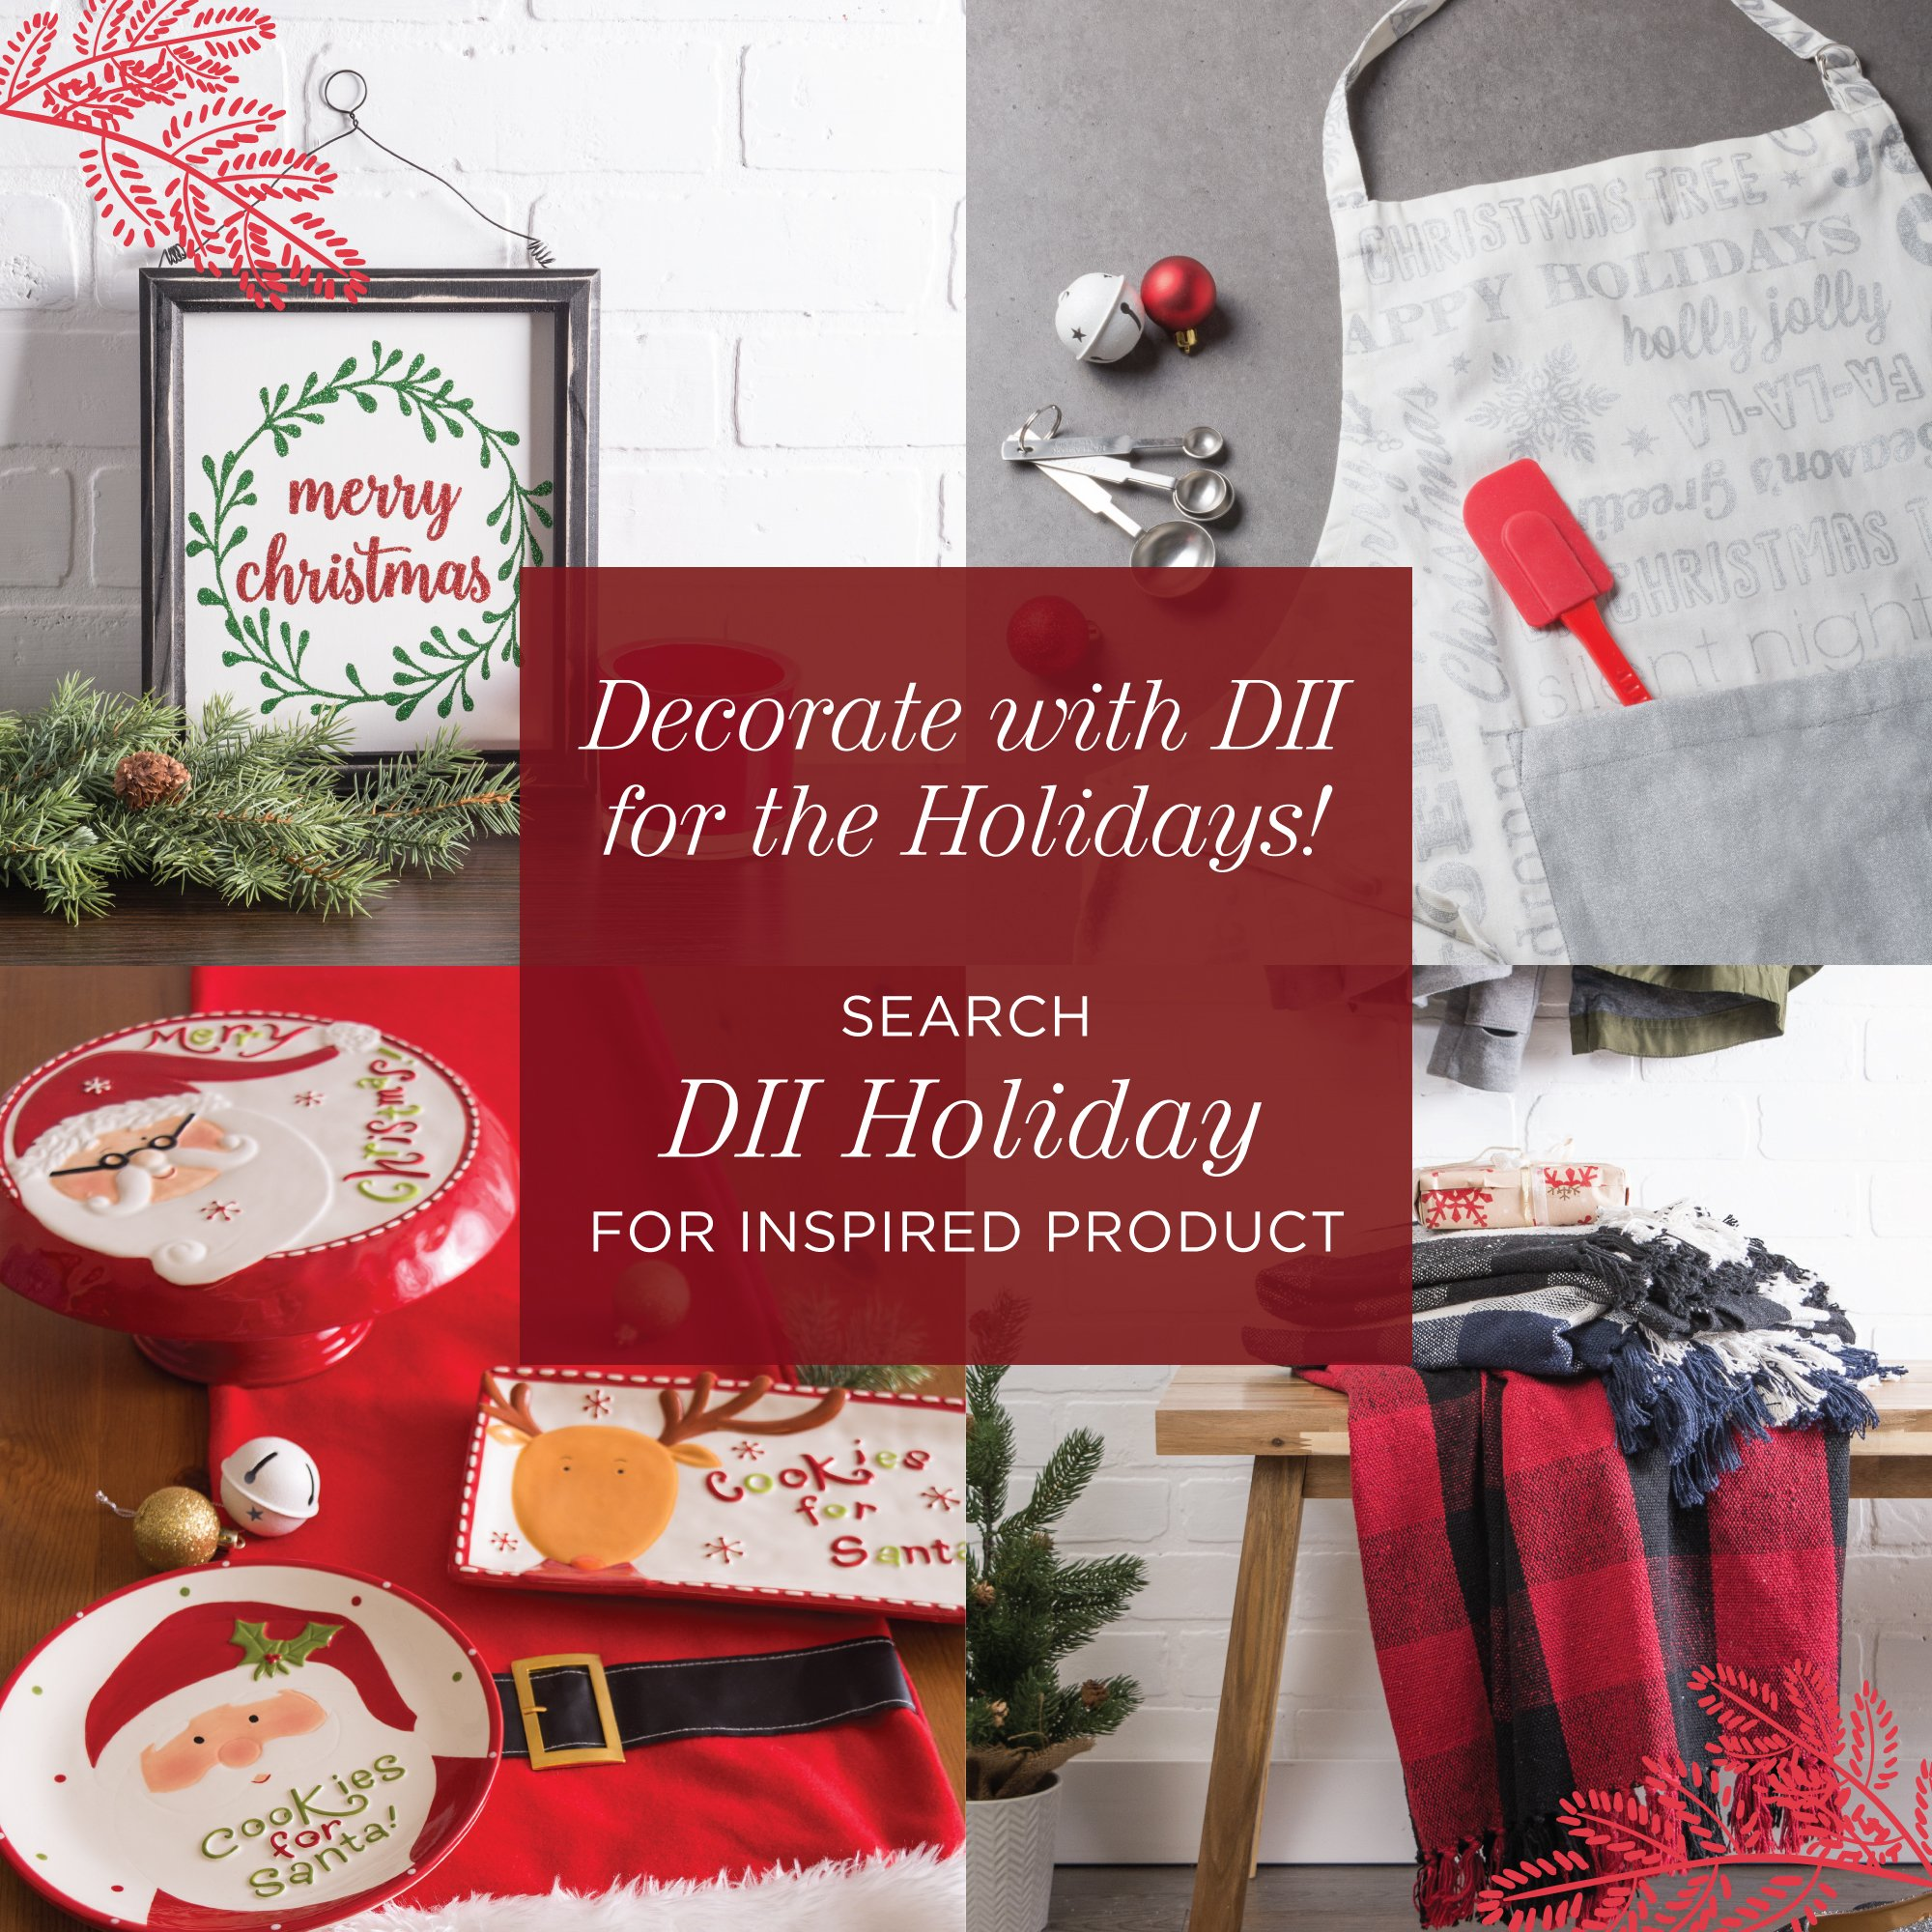 DII Oversized 20x20 Cotton Napkin, Pack of 6, Red & White Check - Perfect for Fall, Thanksgiving, Farmhouse DÃcor, Christmas, Picnics & Potlucks or Everyday Use by DII (Image #9)